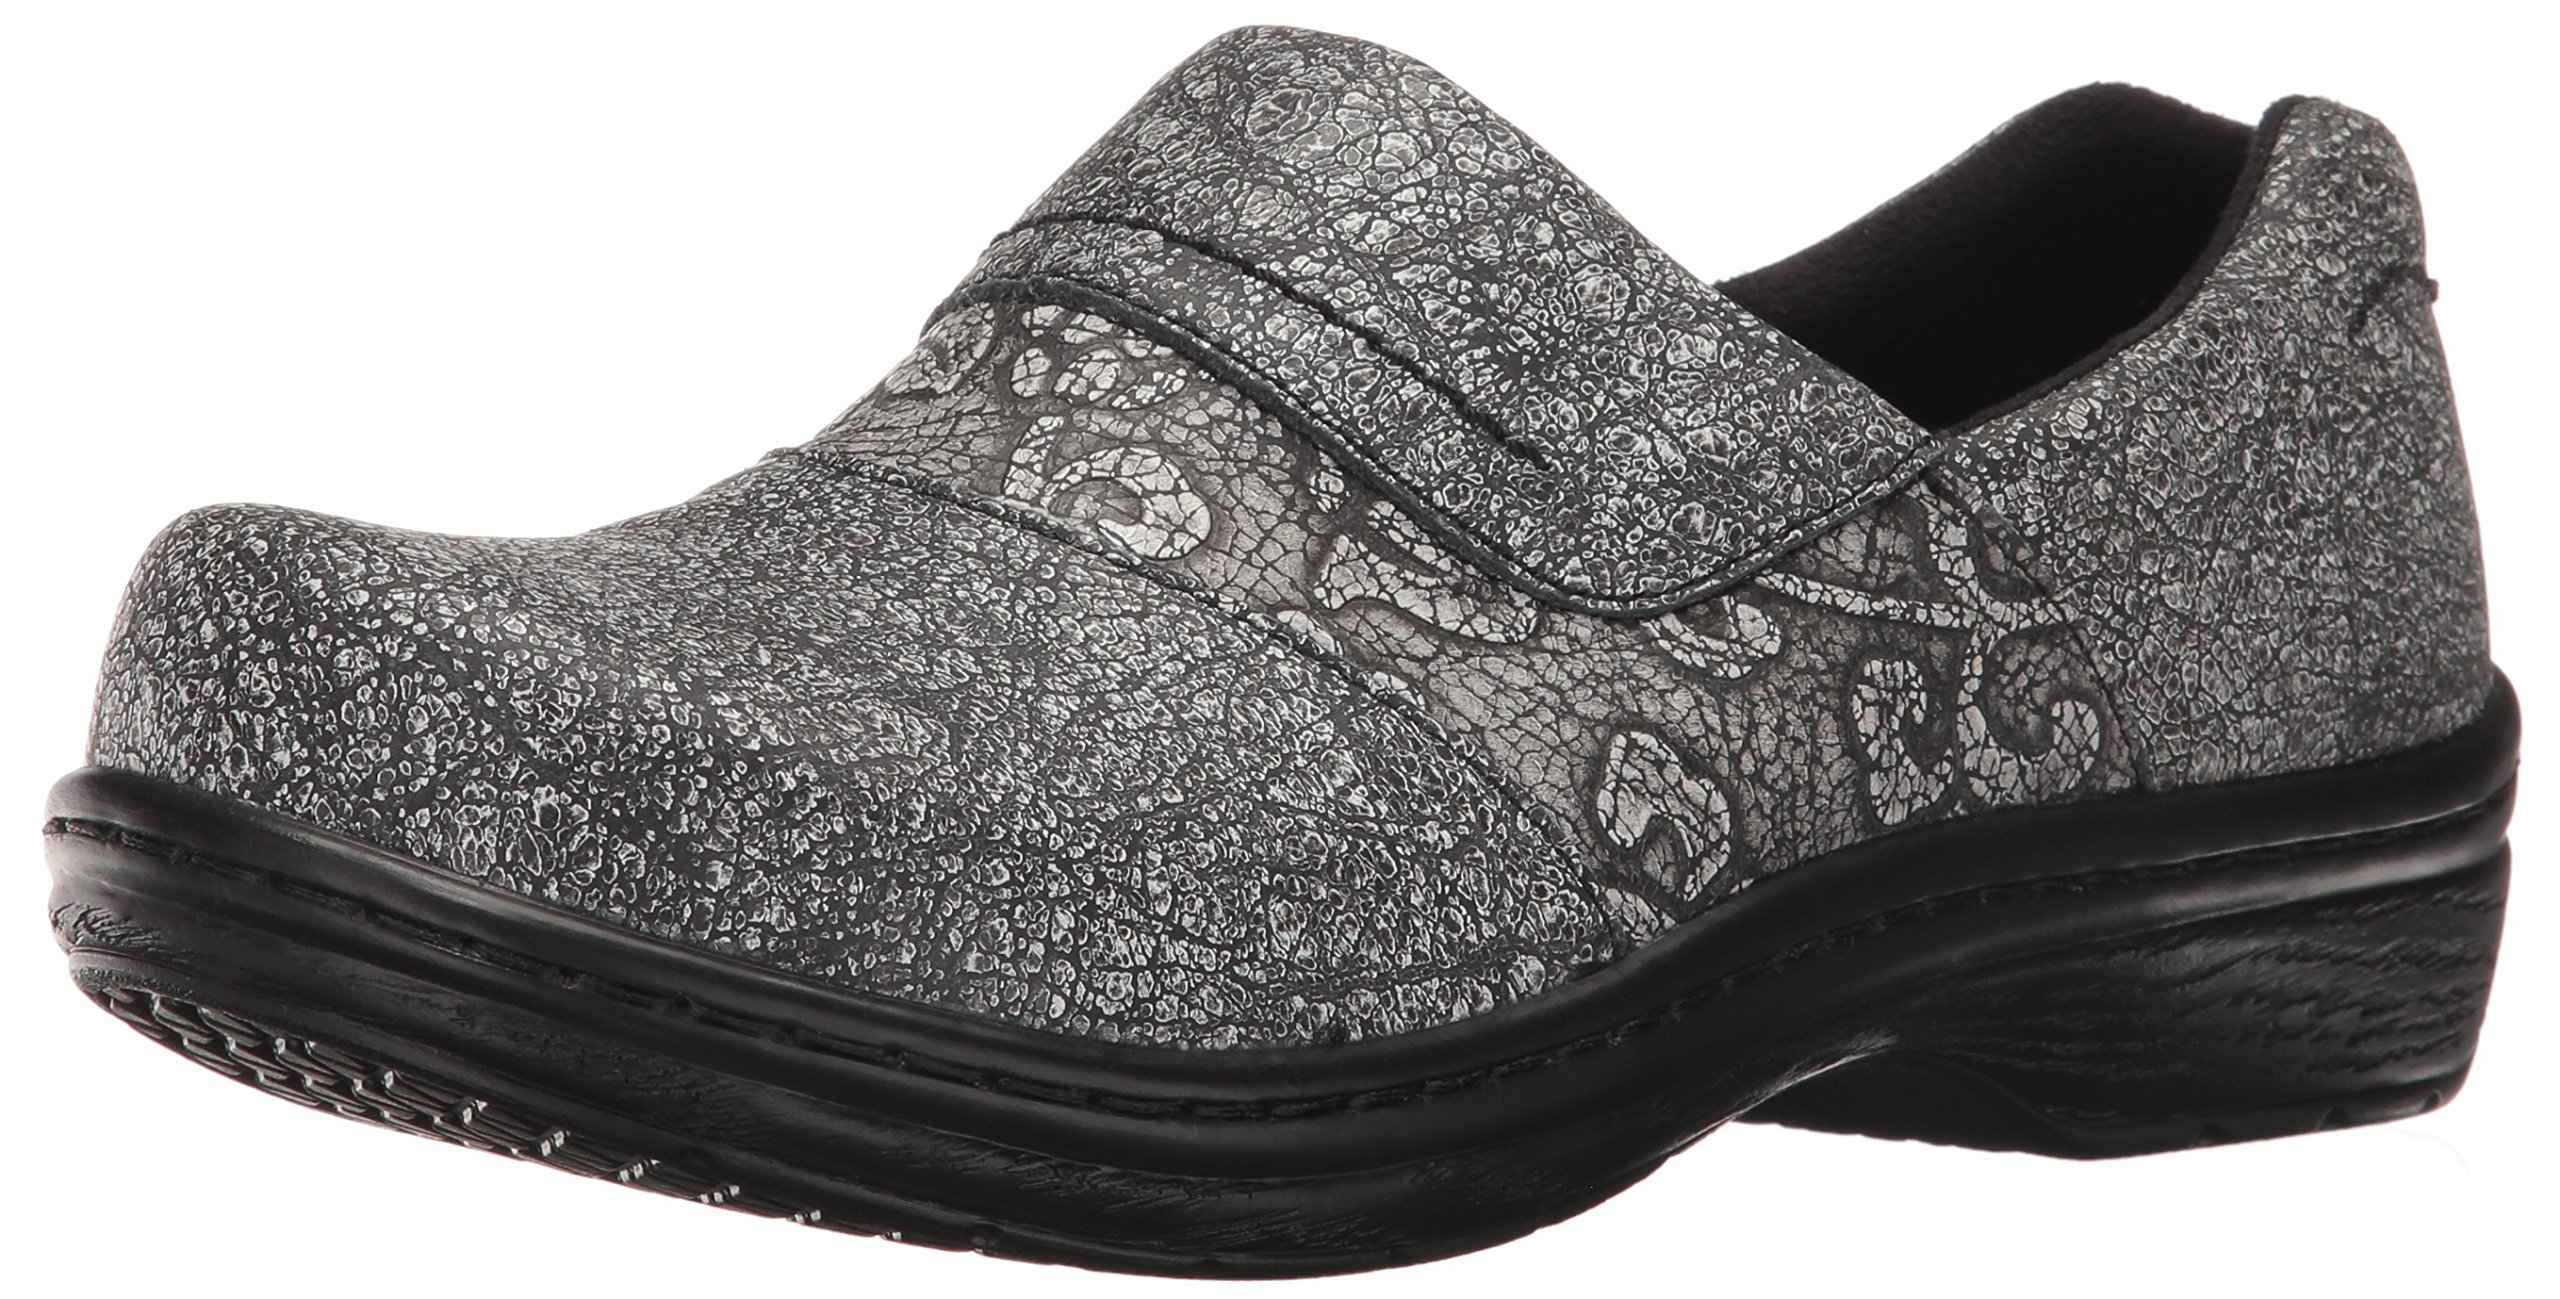 Klogs USA Women's Cardiff Mule, Black wigwam, 9 M US